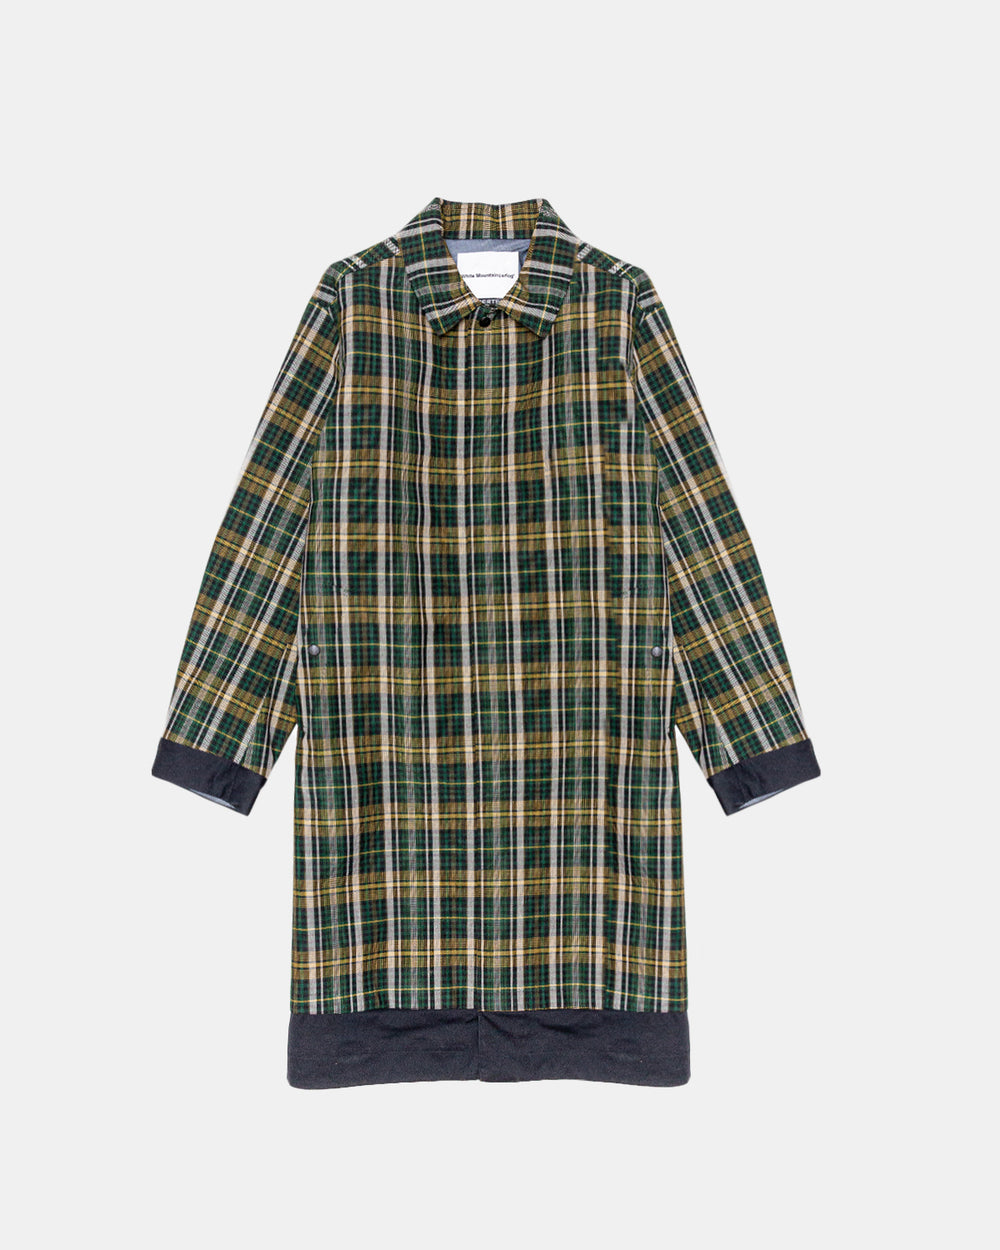 White Mountaineering - Pertex Shield Pro Wool Check Coat (Green)